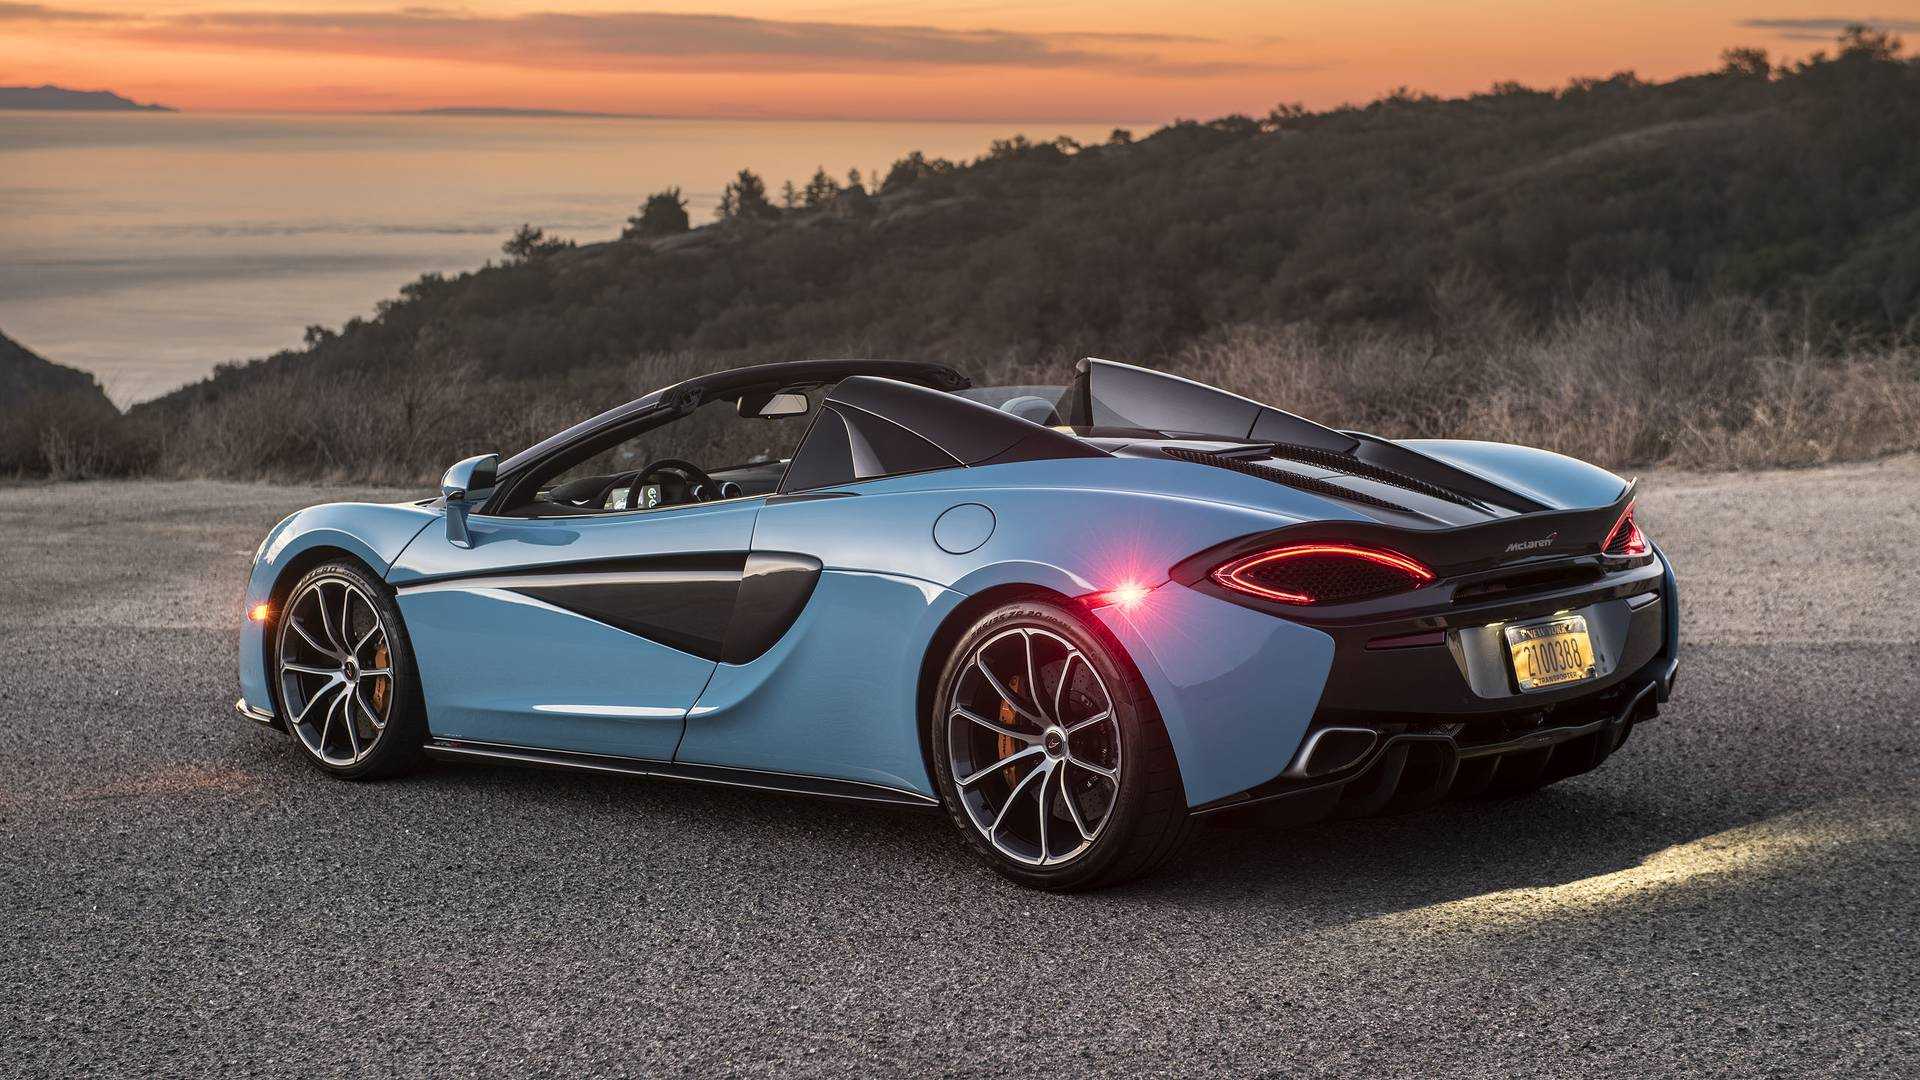 2018-mclaren-570s-spider-review